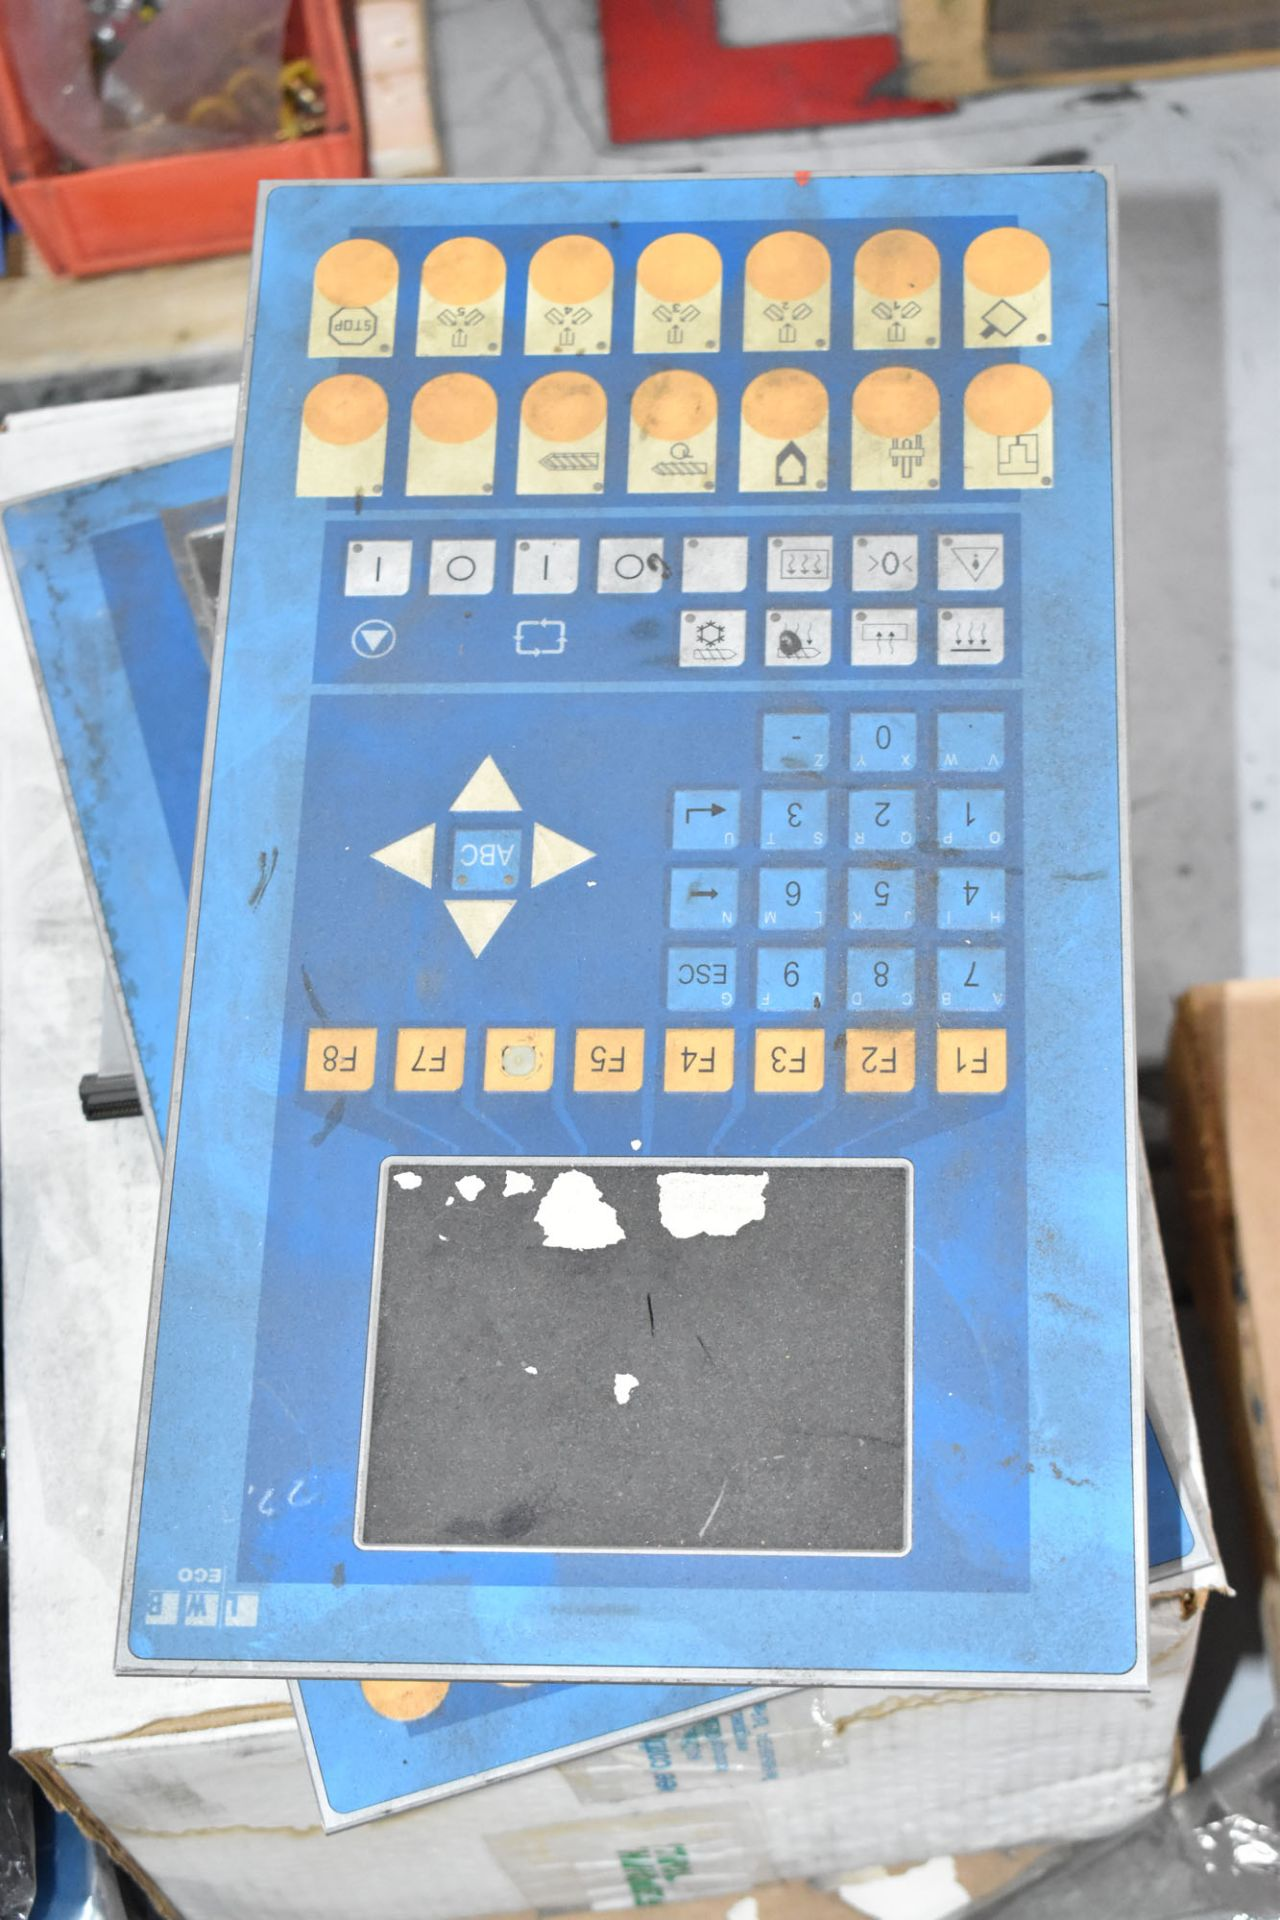 LOT/ PALLET WITH CONTENTS CONSISTING OF ELECTRICAL PANELS, PARTS, AND EXTRUDER LINE COMPONENTS [ - Image 2 of 3